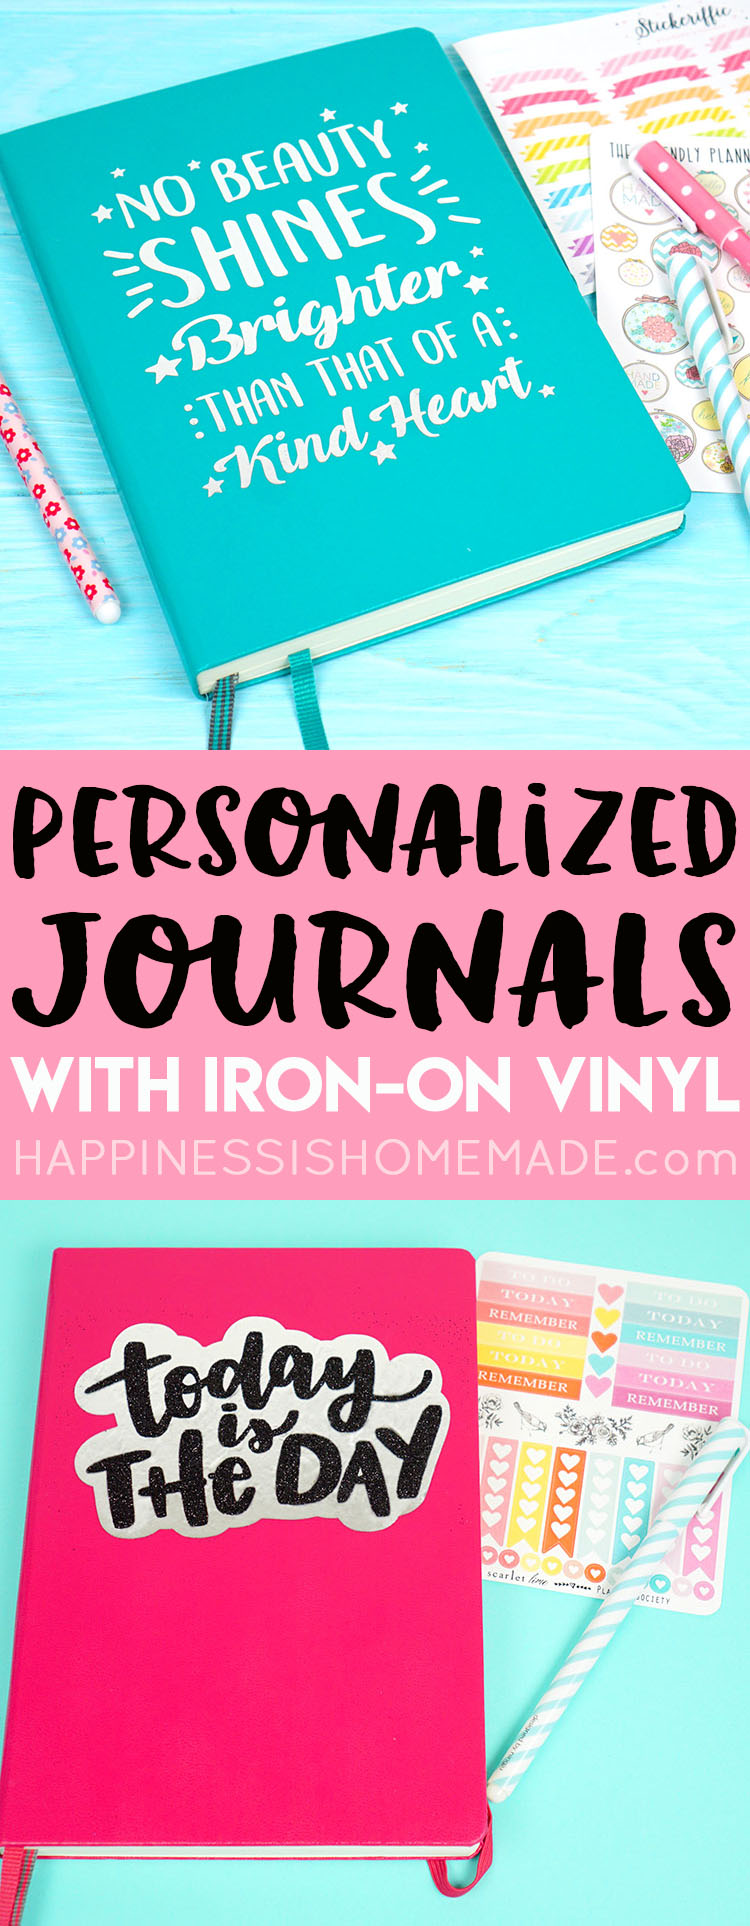 Personalized Journals with Iron-On Vinyl - Happiness is Homemade